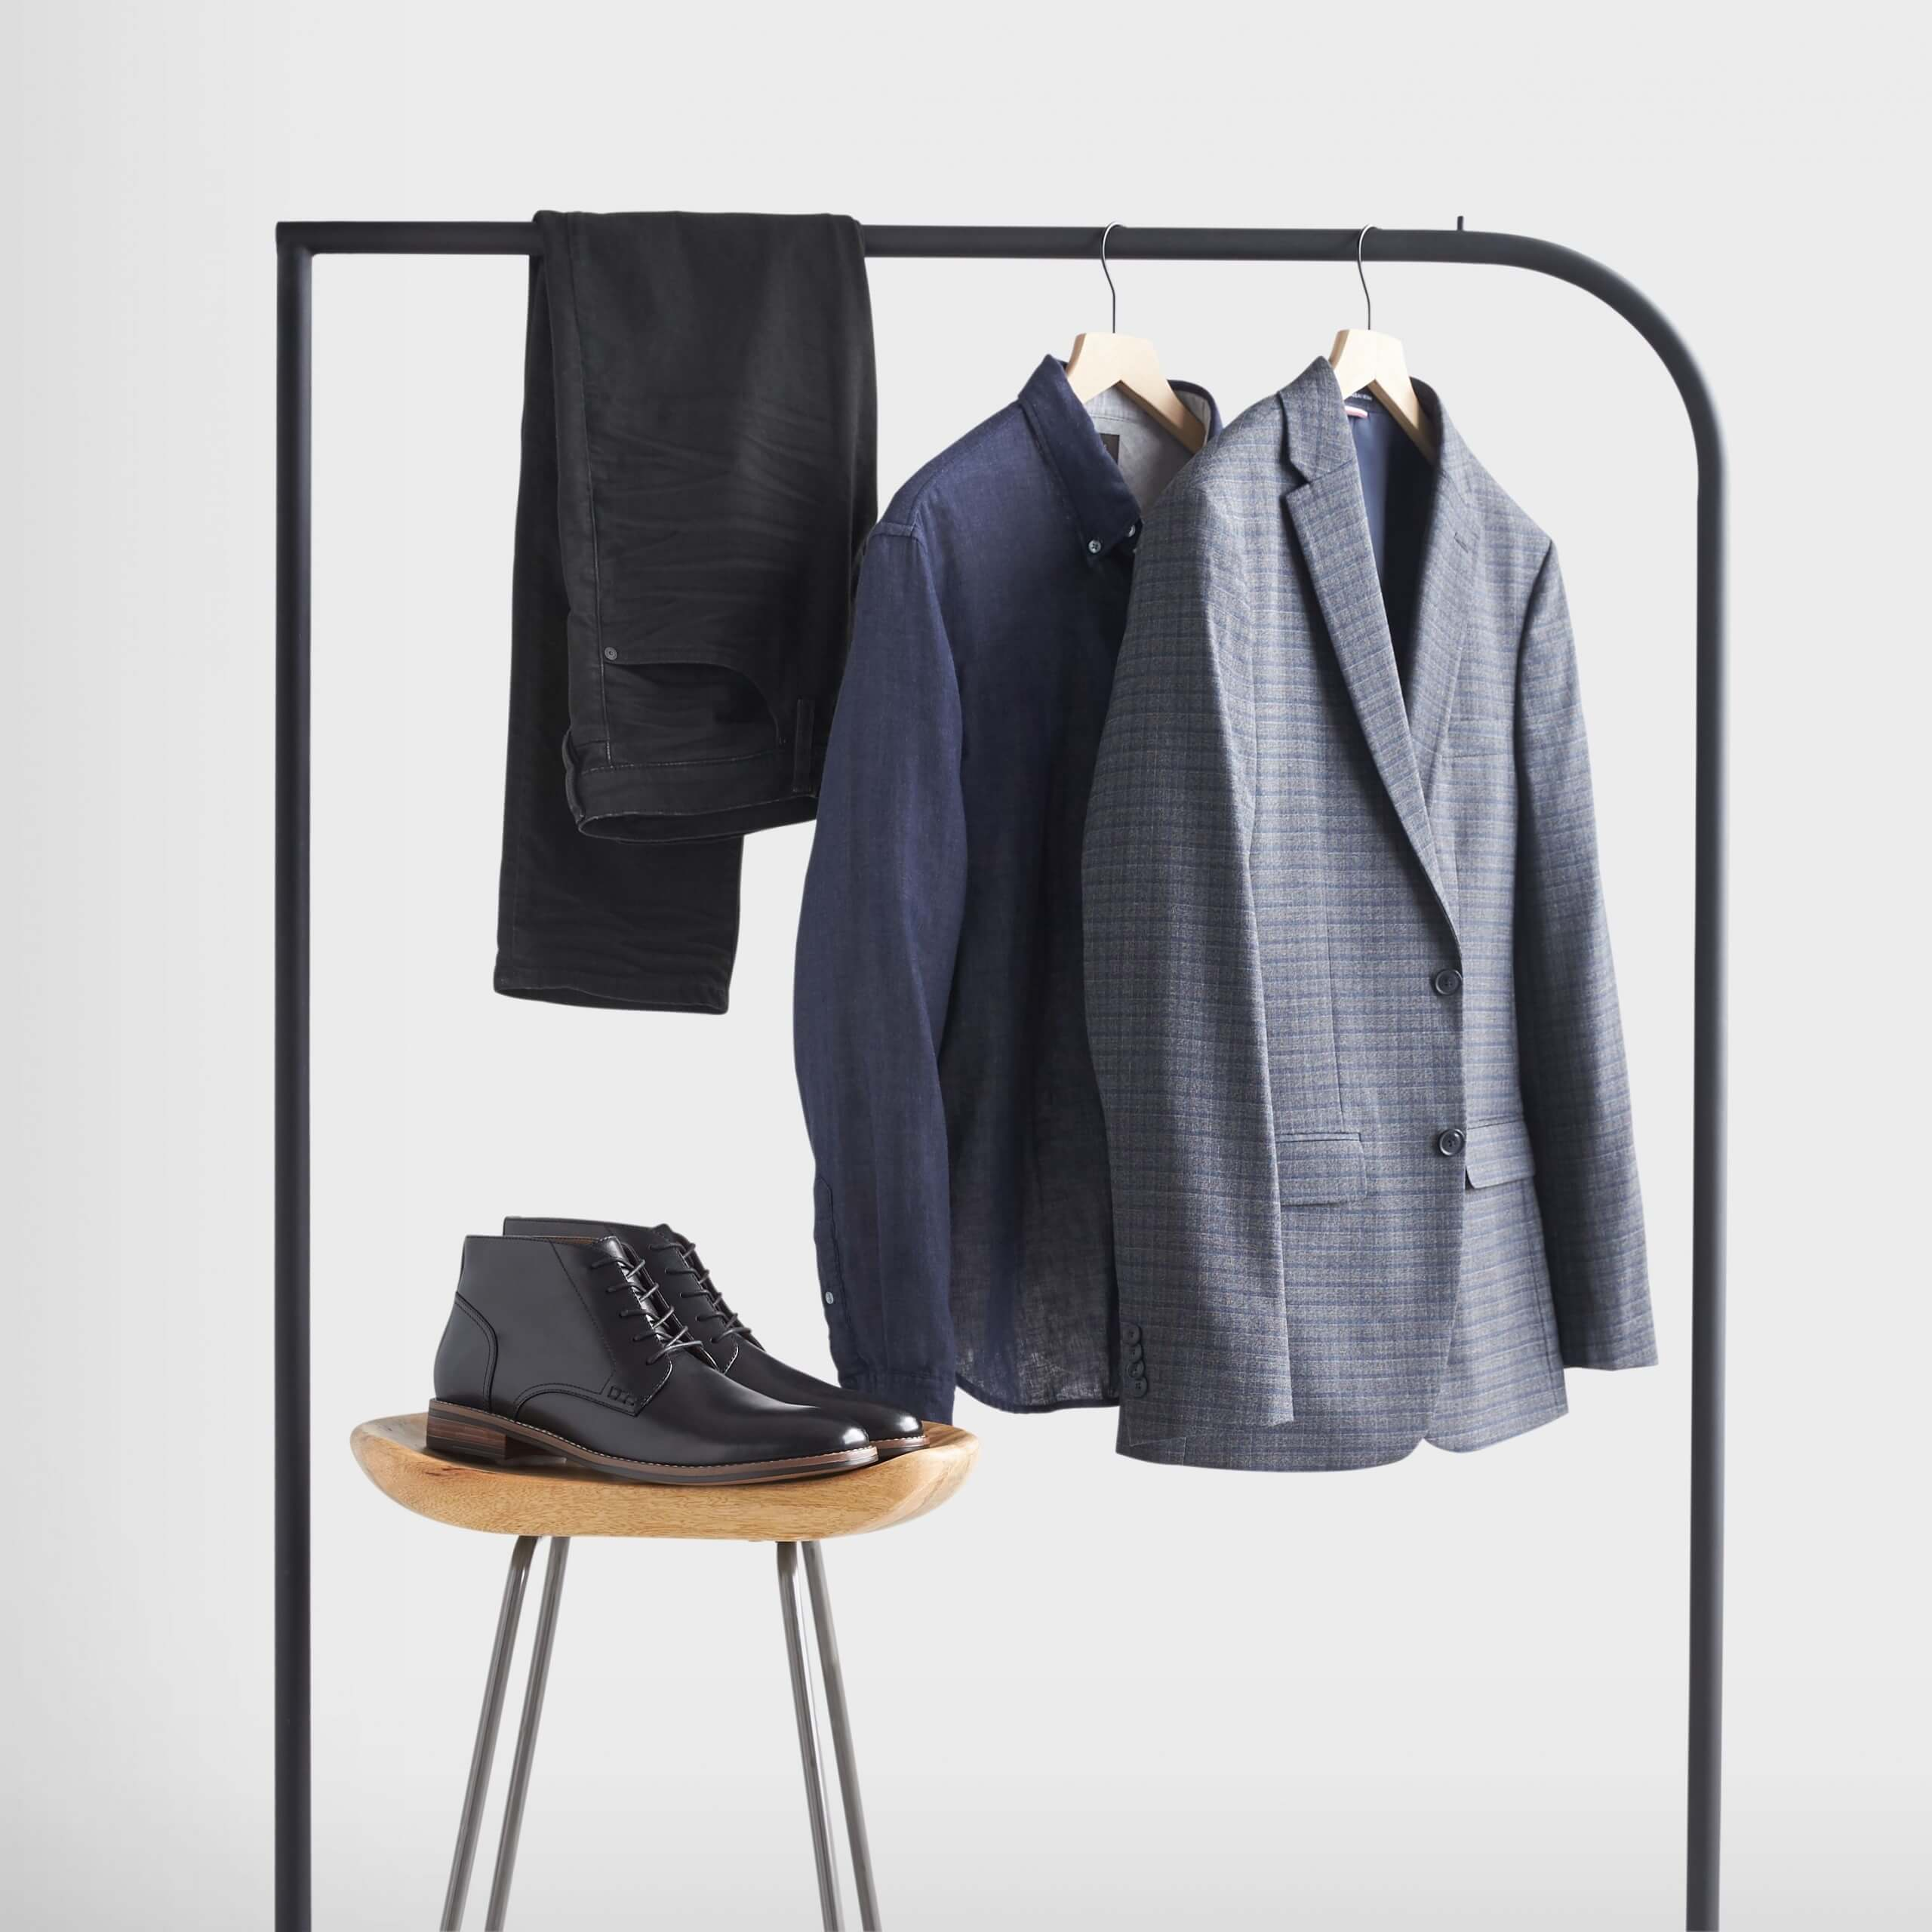 Stitch Fix Men's rack image featuring blue blazer, navy blue dress shirt and black jeans hanging on black rack, next to black leather chukkas on wooden stool.